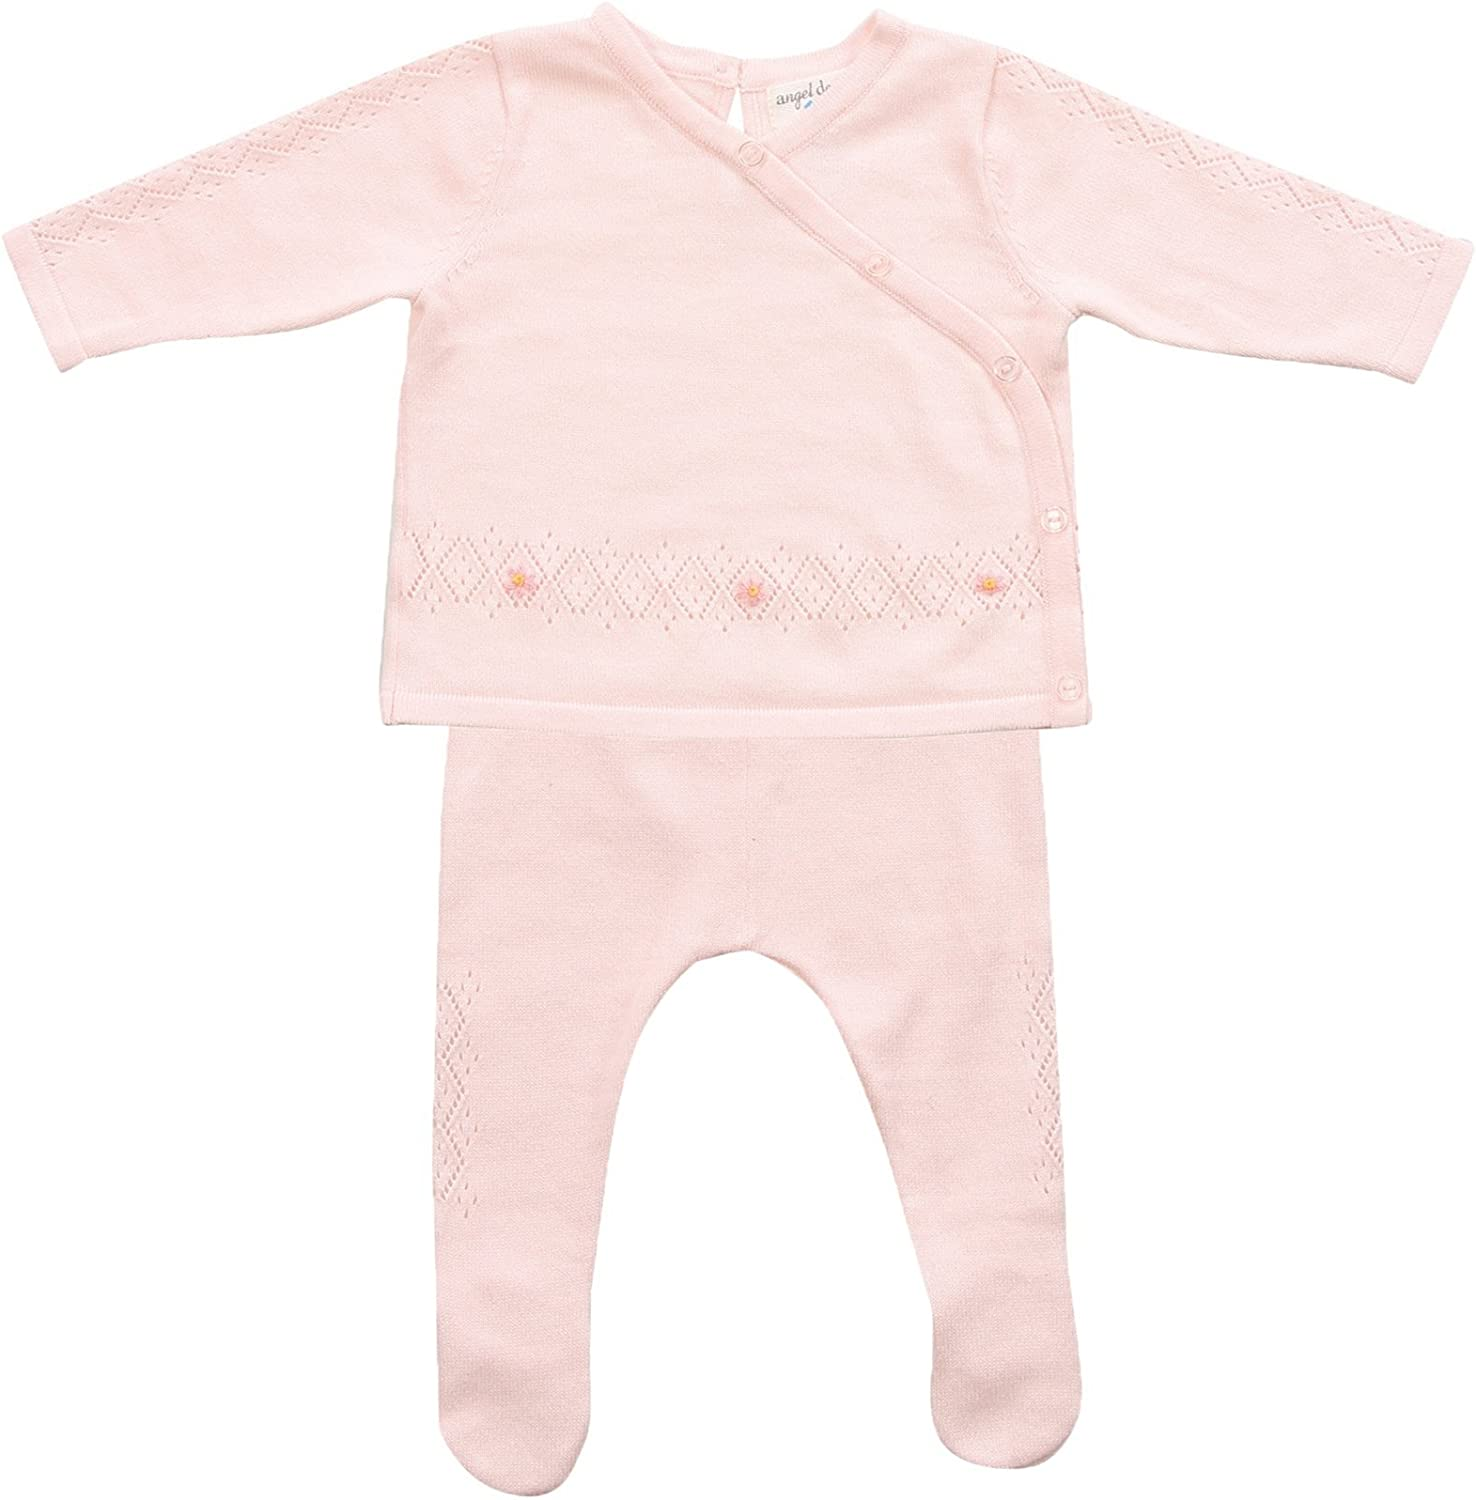 Newborn baby girl 2 pc Angel Dear body suit and pants viscose from bamboo fabric